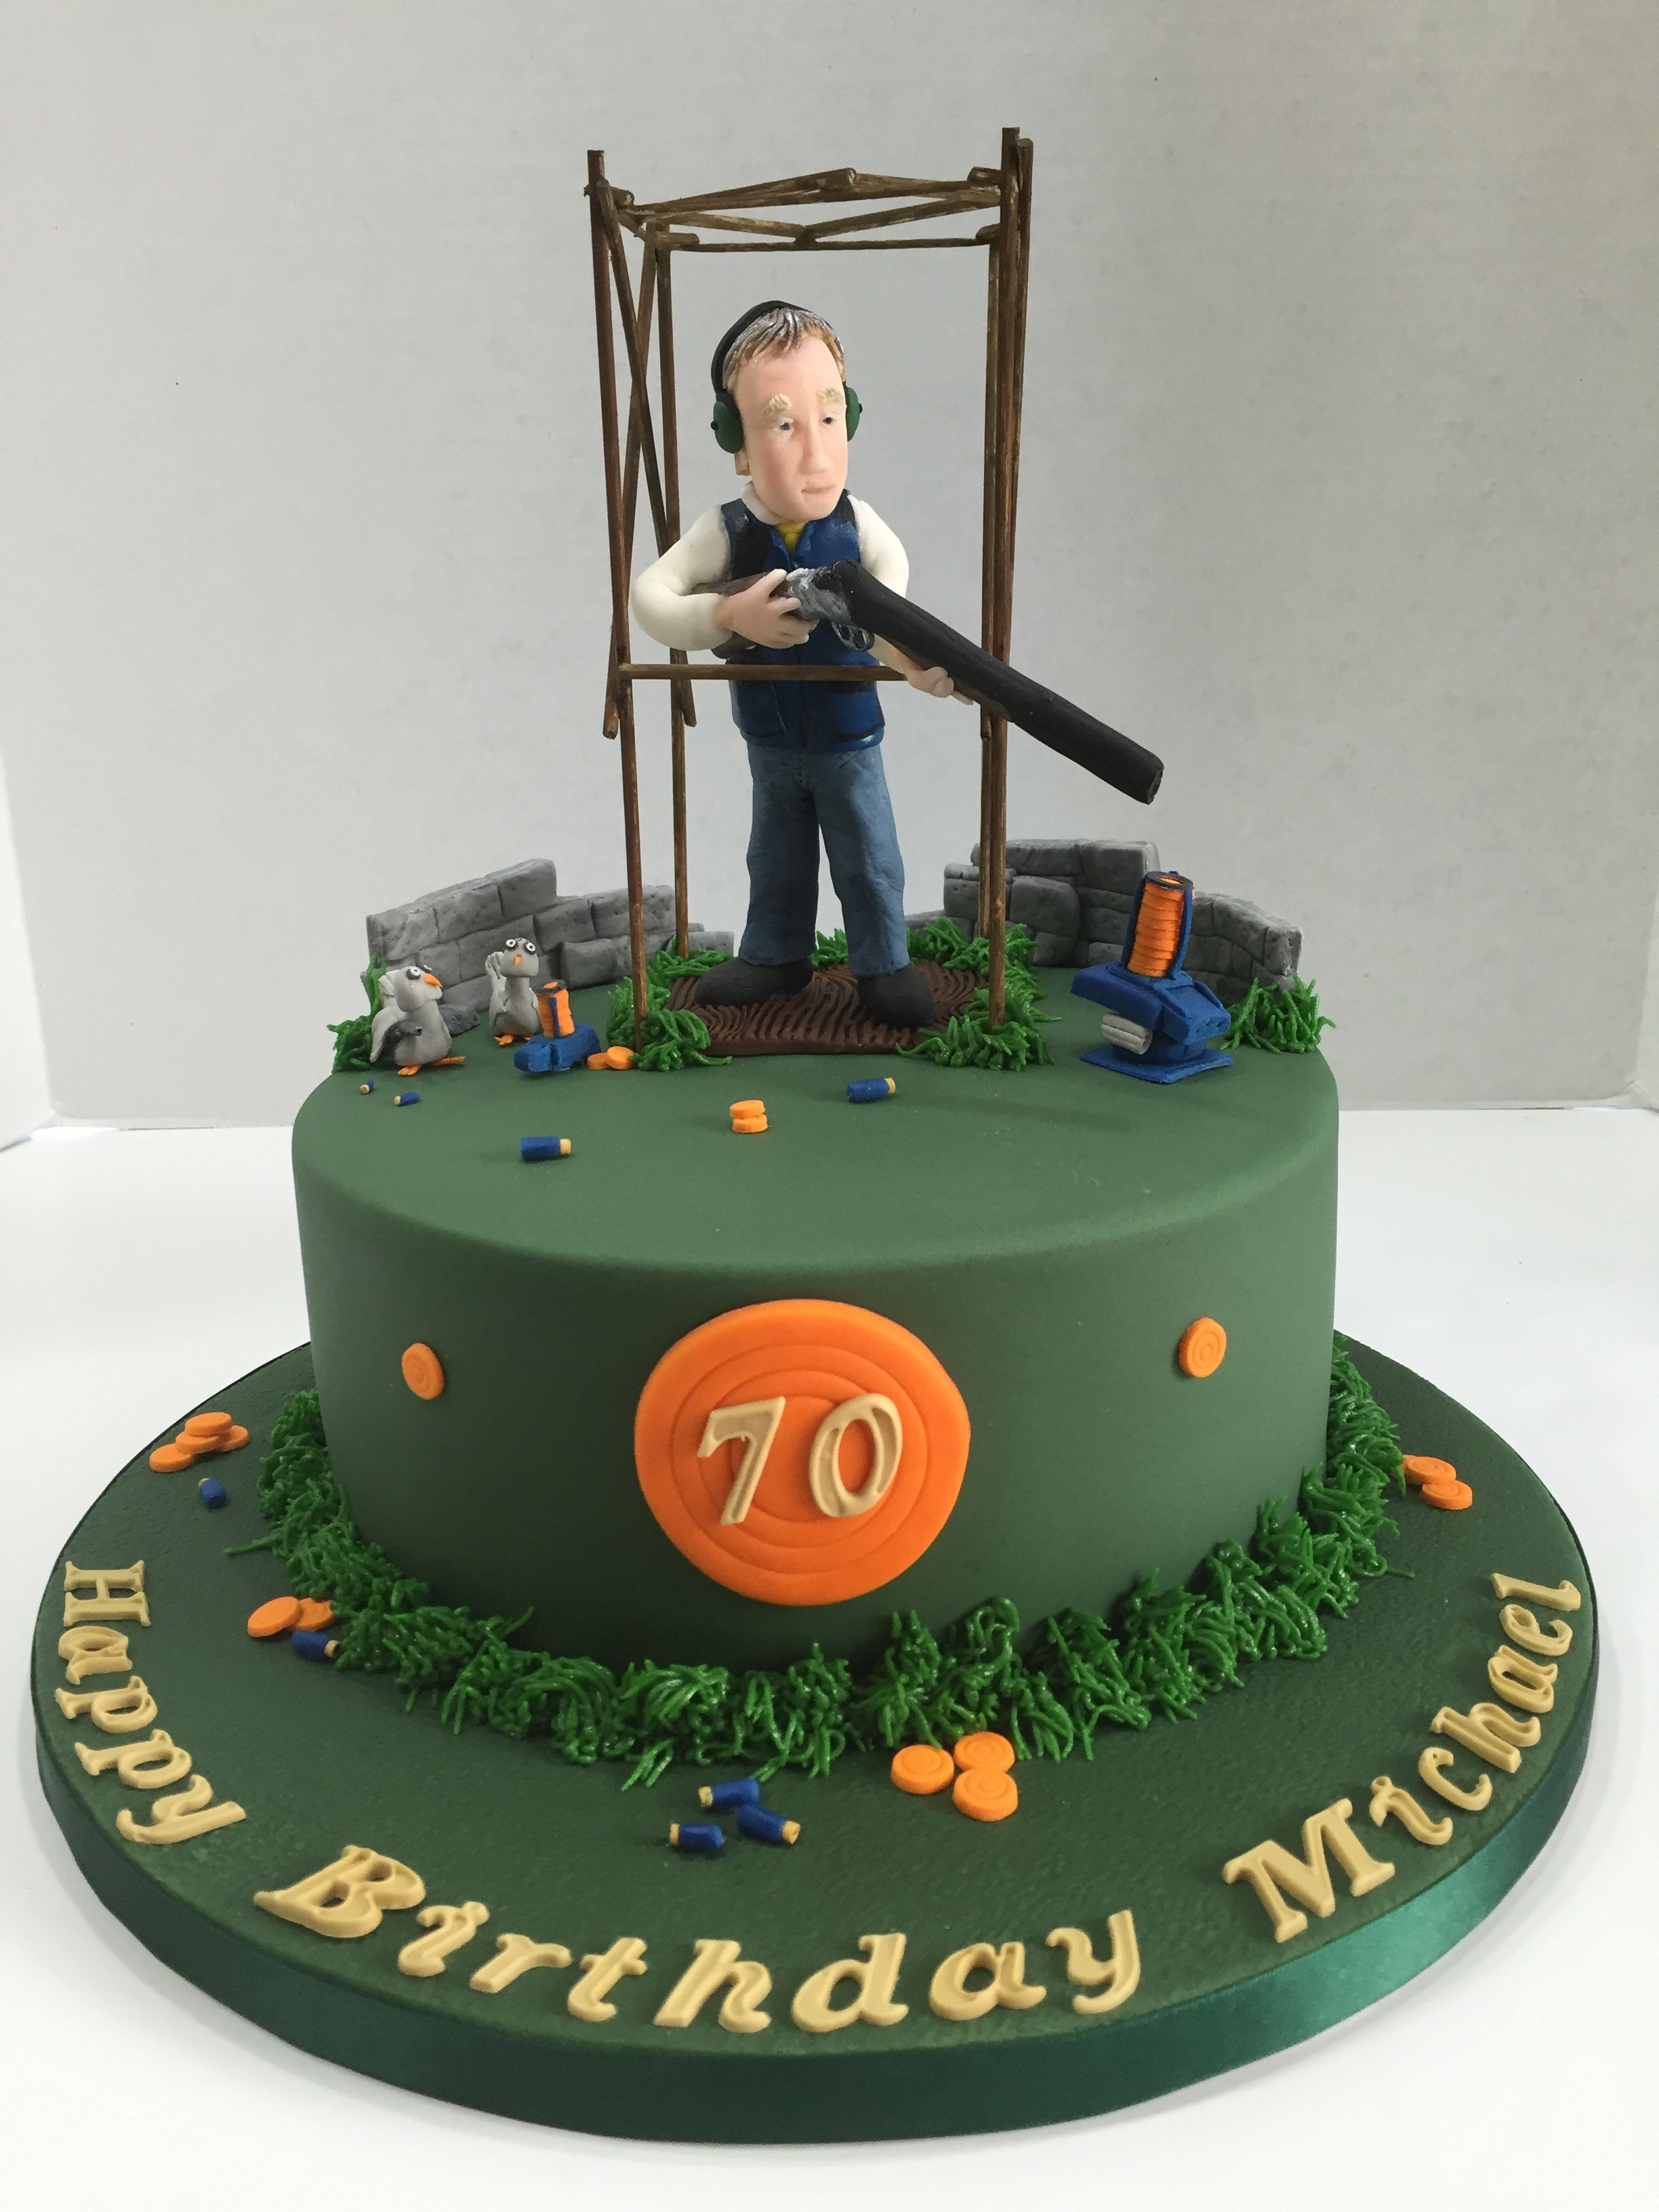 Clay Pigeon Shooting Cake June 2016 Birthday cakes for